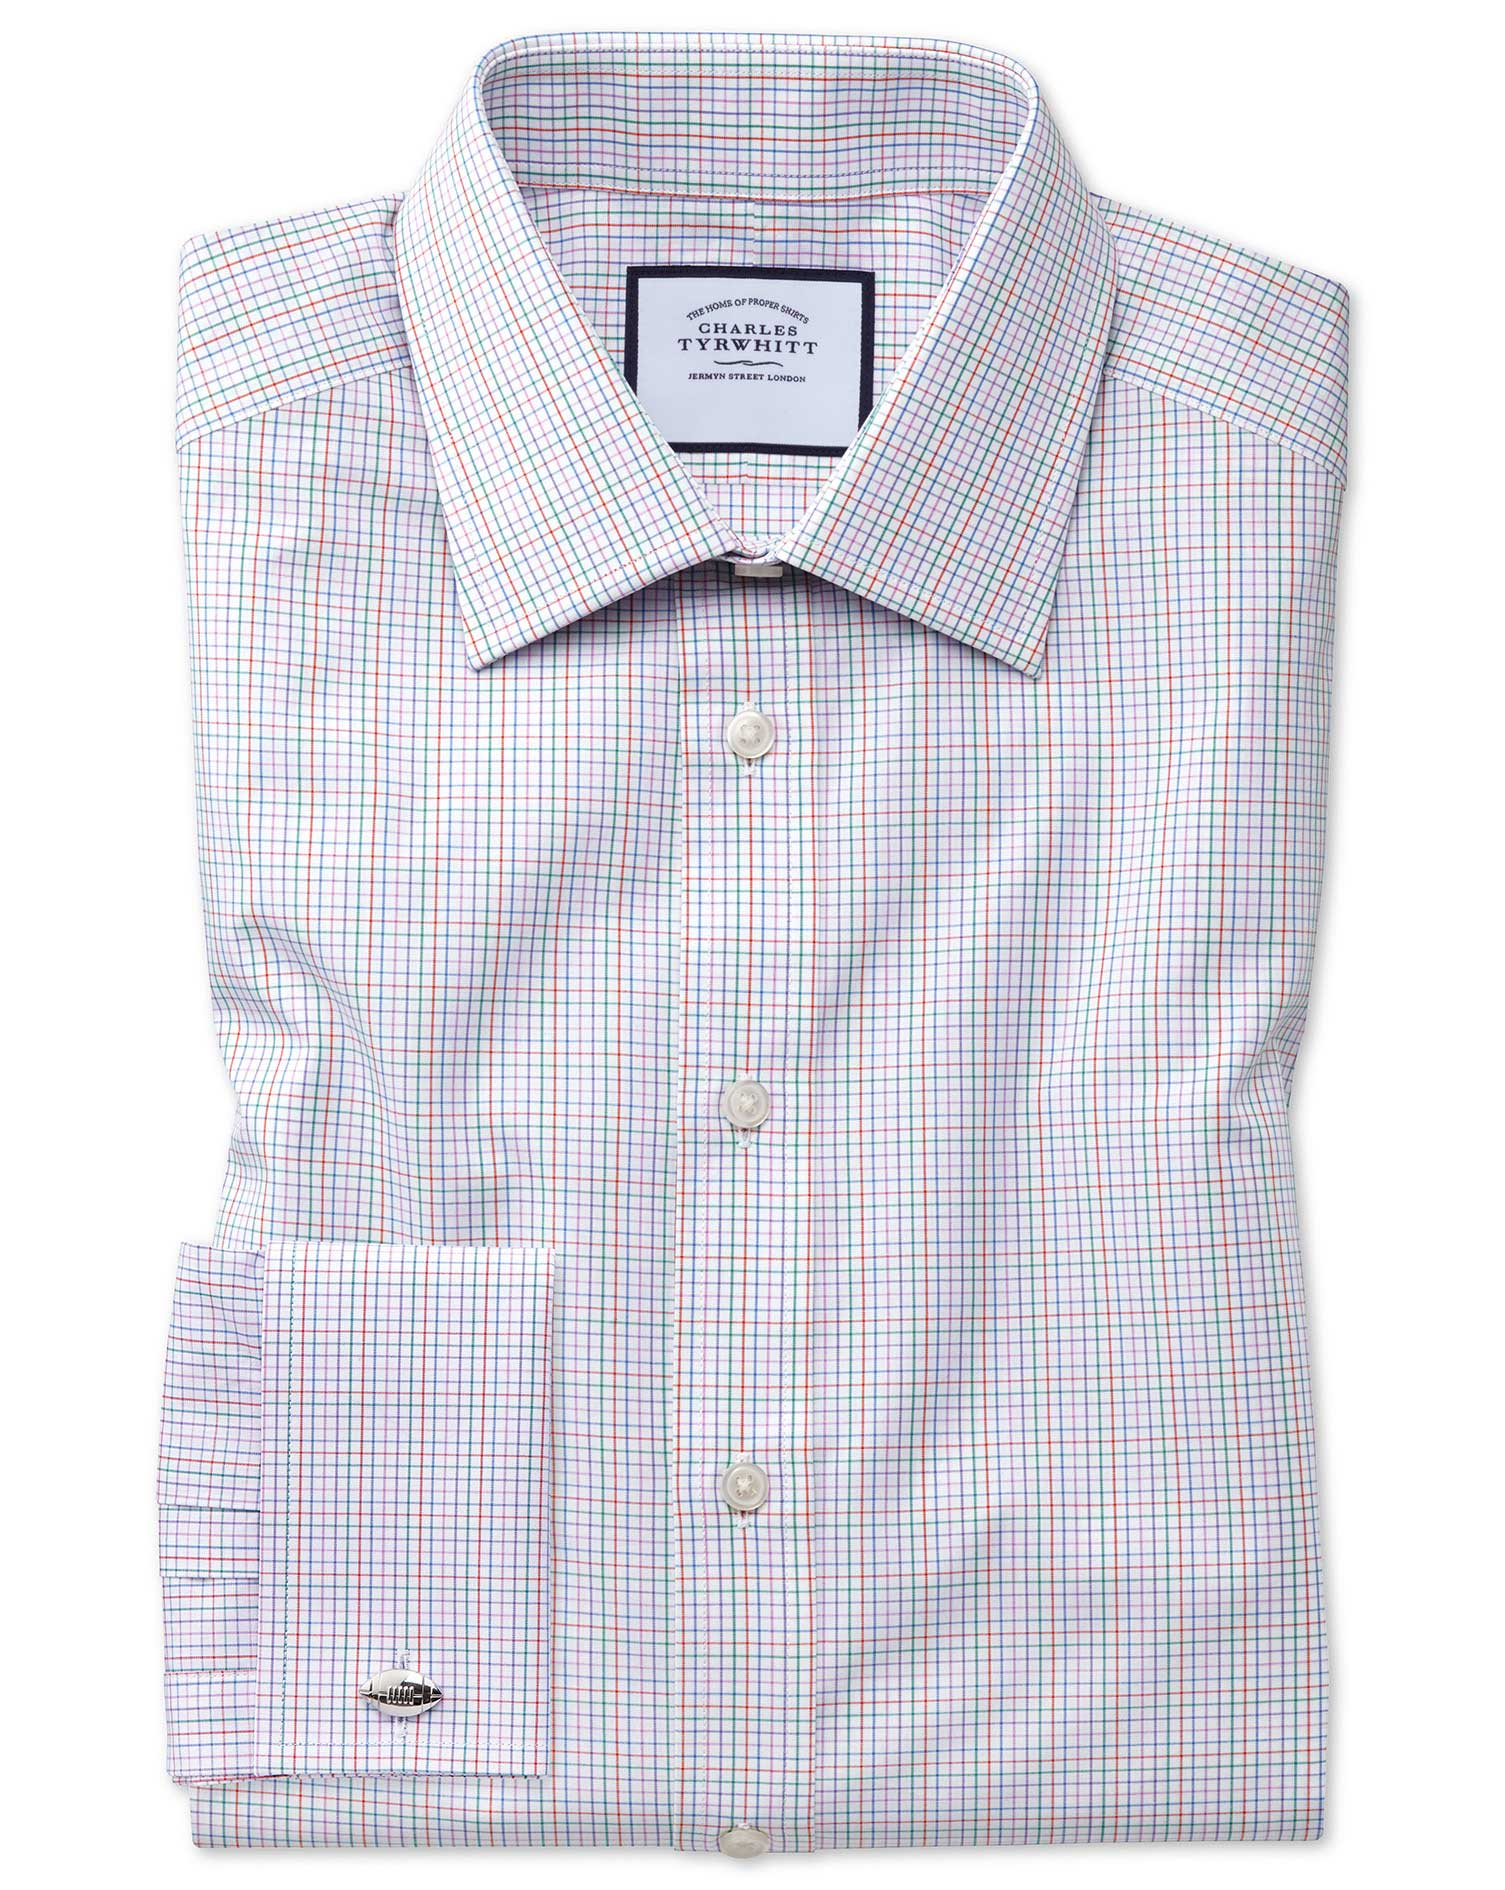 Slim Fit Pink Multi Check Egyptian Cotton Formal Shirt Double Cuff Size 18/37 by Charles Tyrwhitt